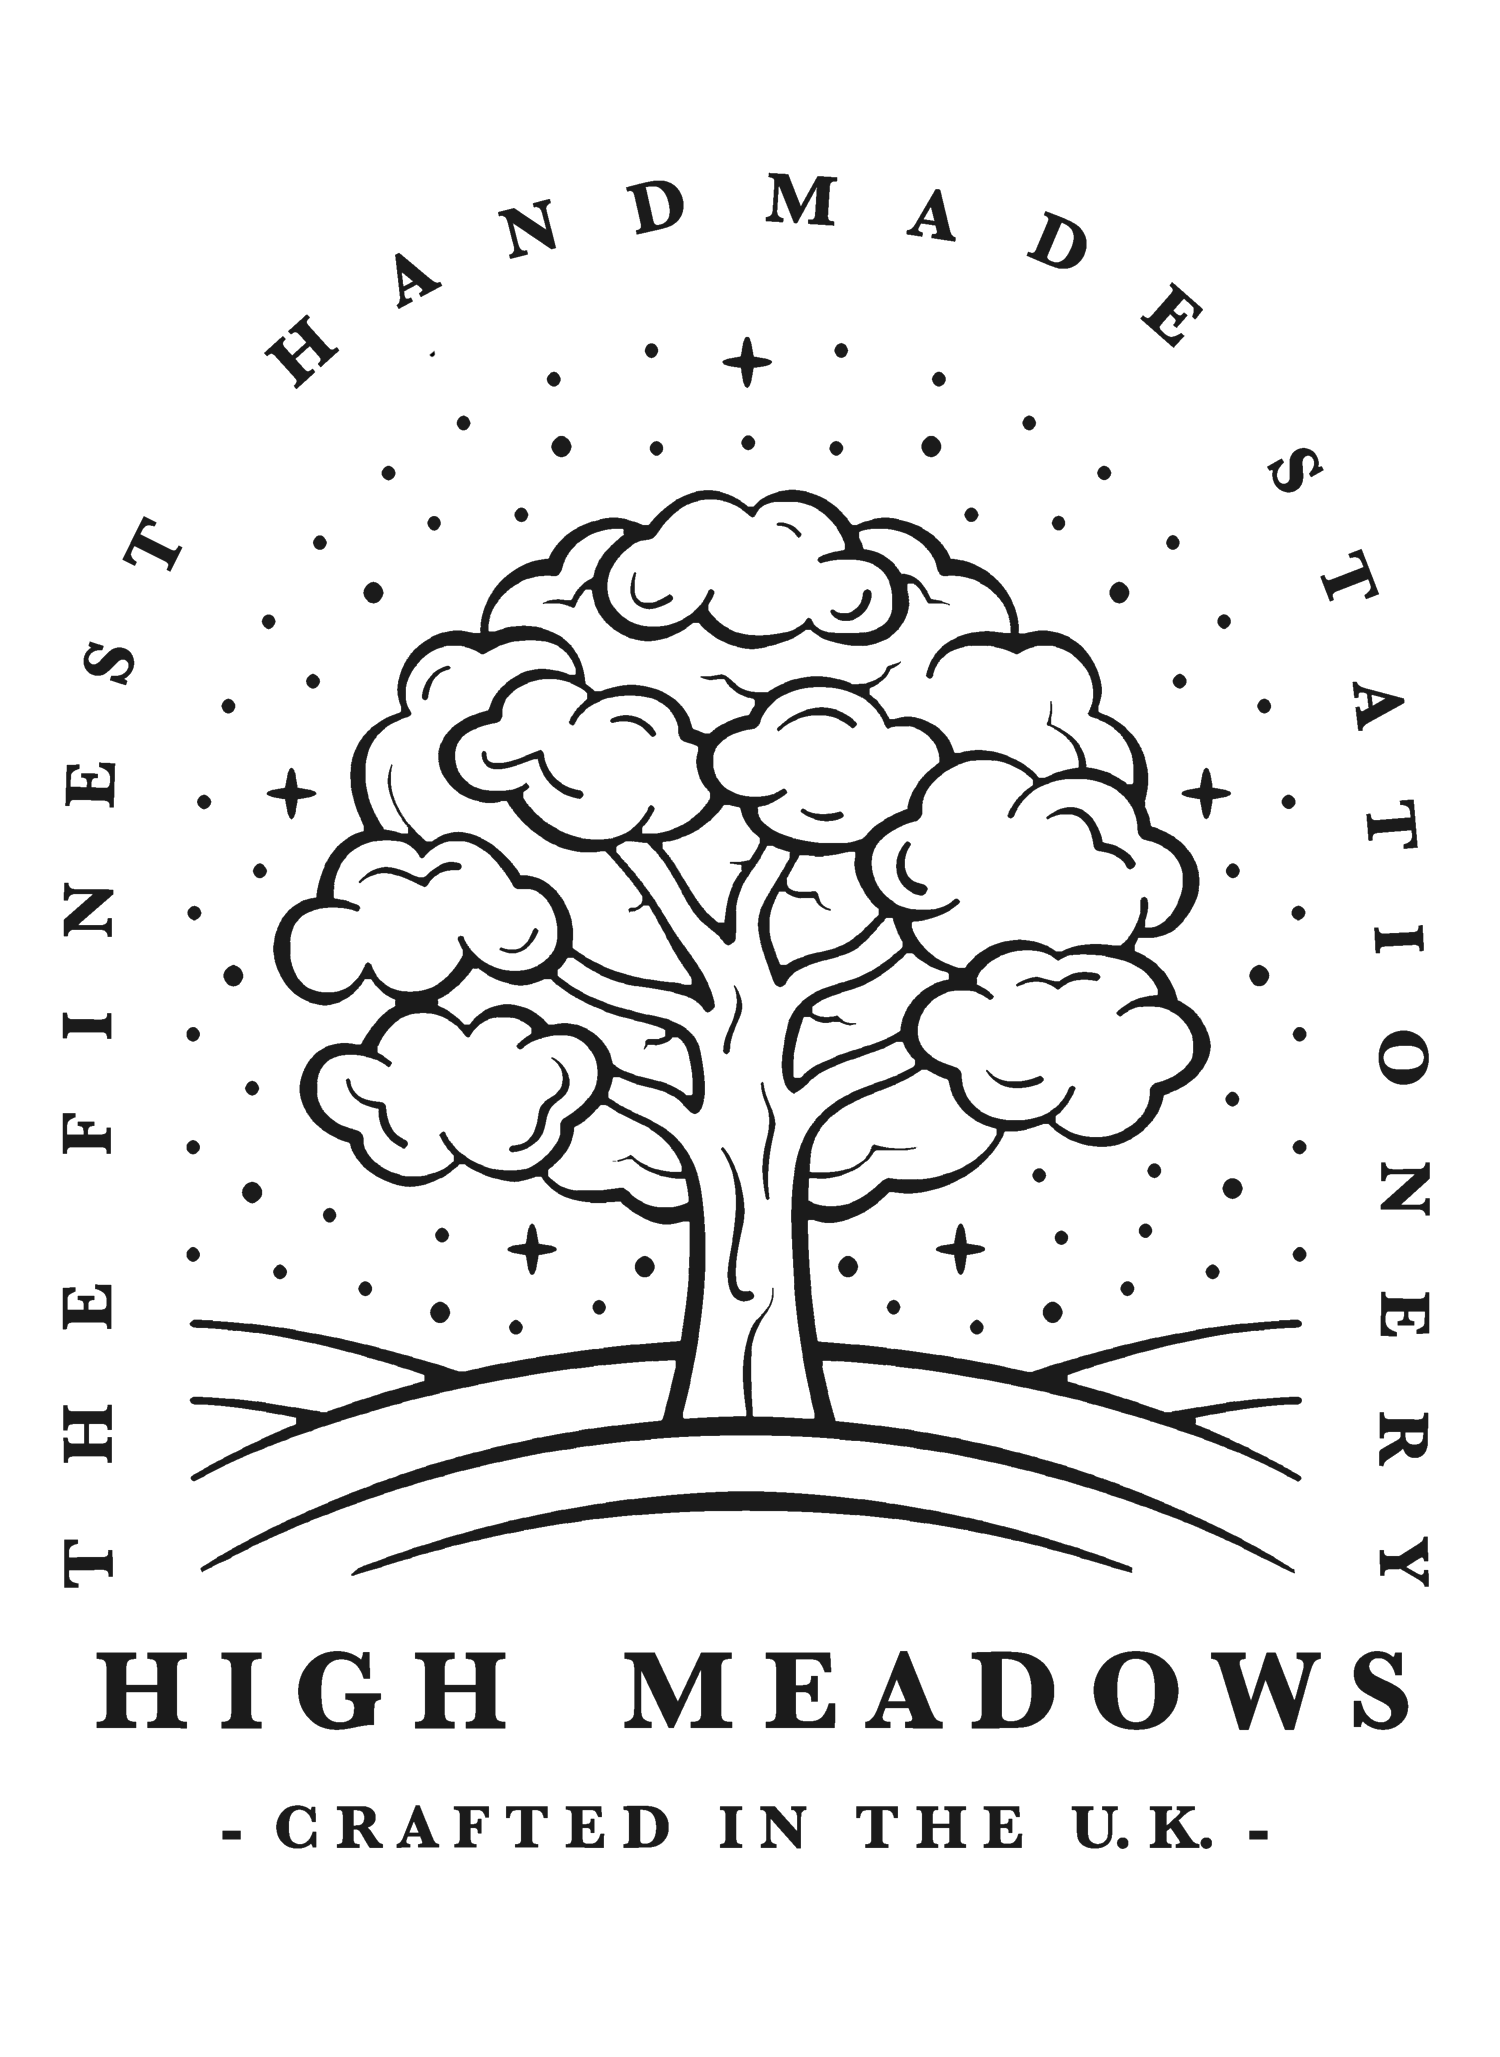 High Meadows